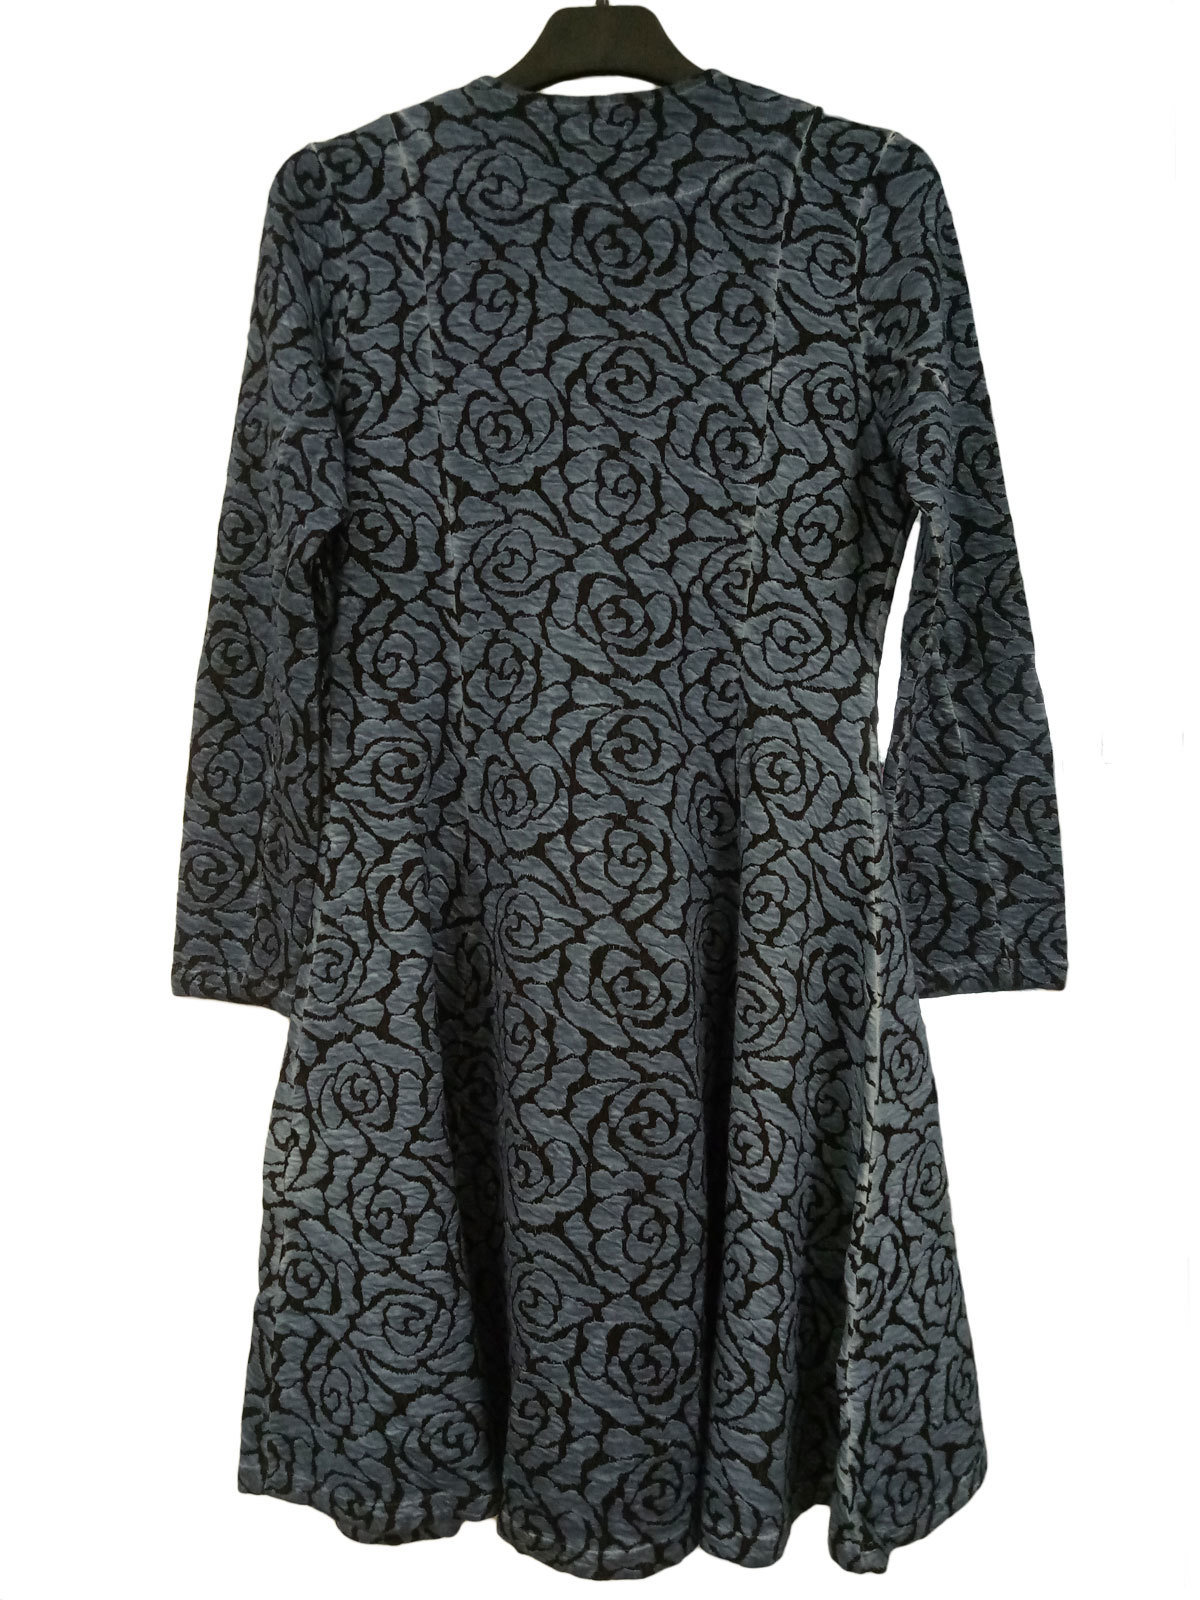 Maloka: Black Rose Fit & Flare Coat (More Colors!)